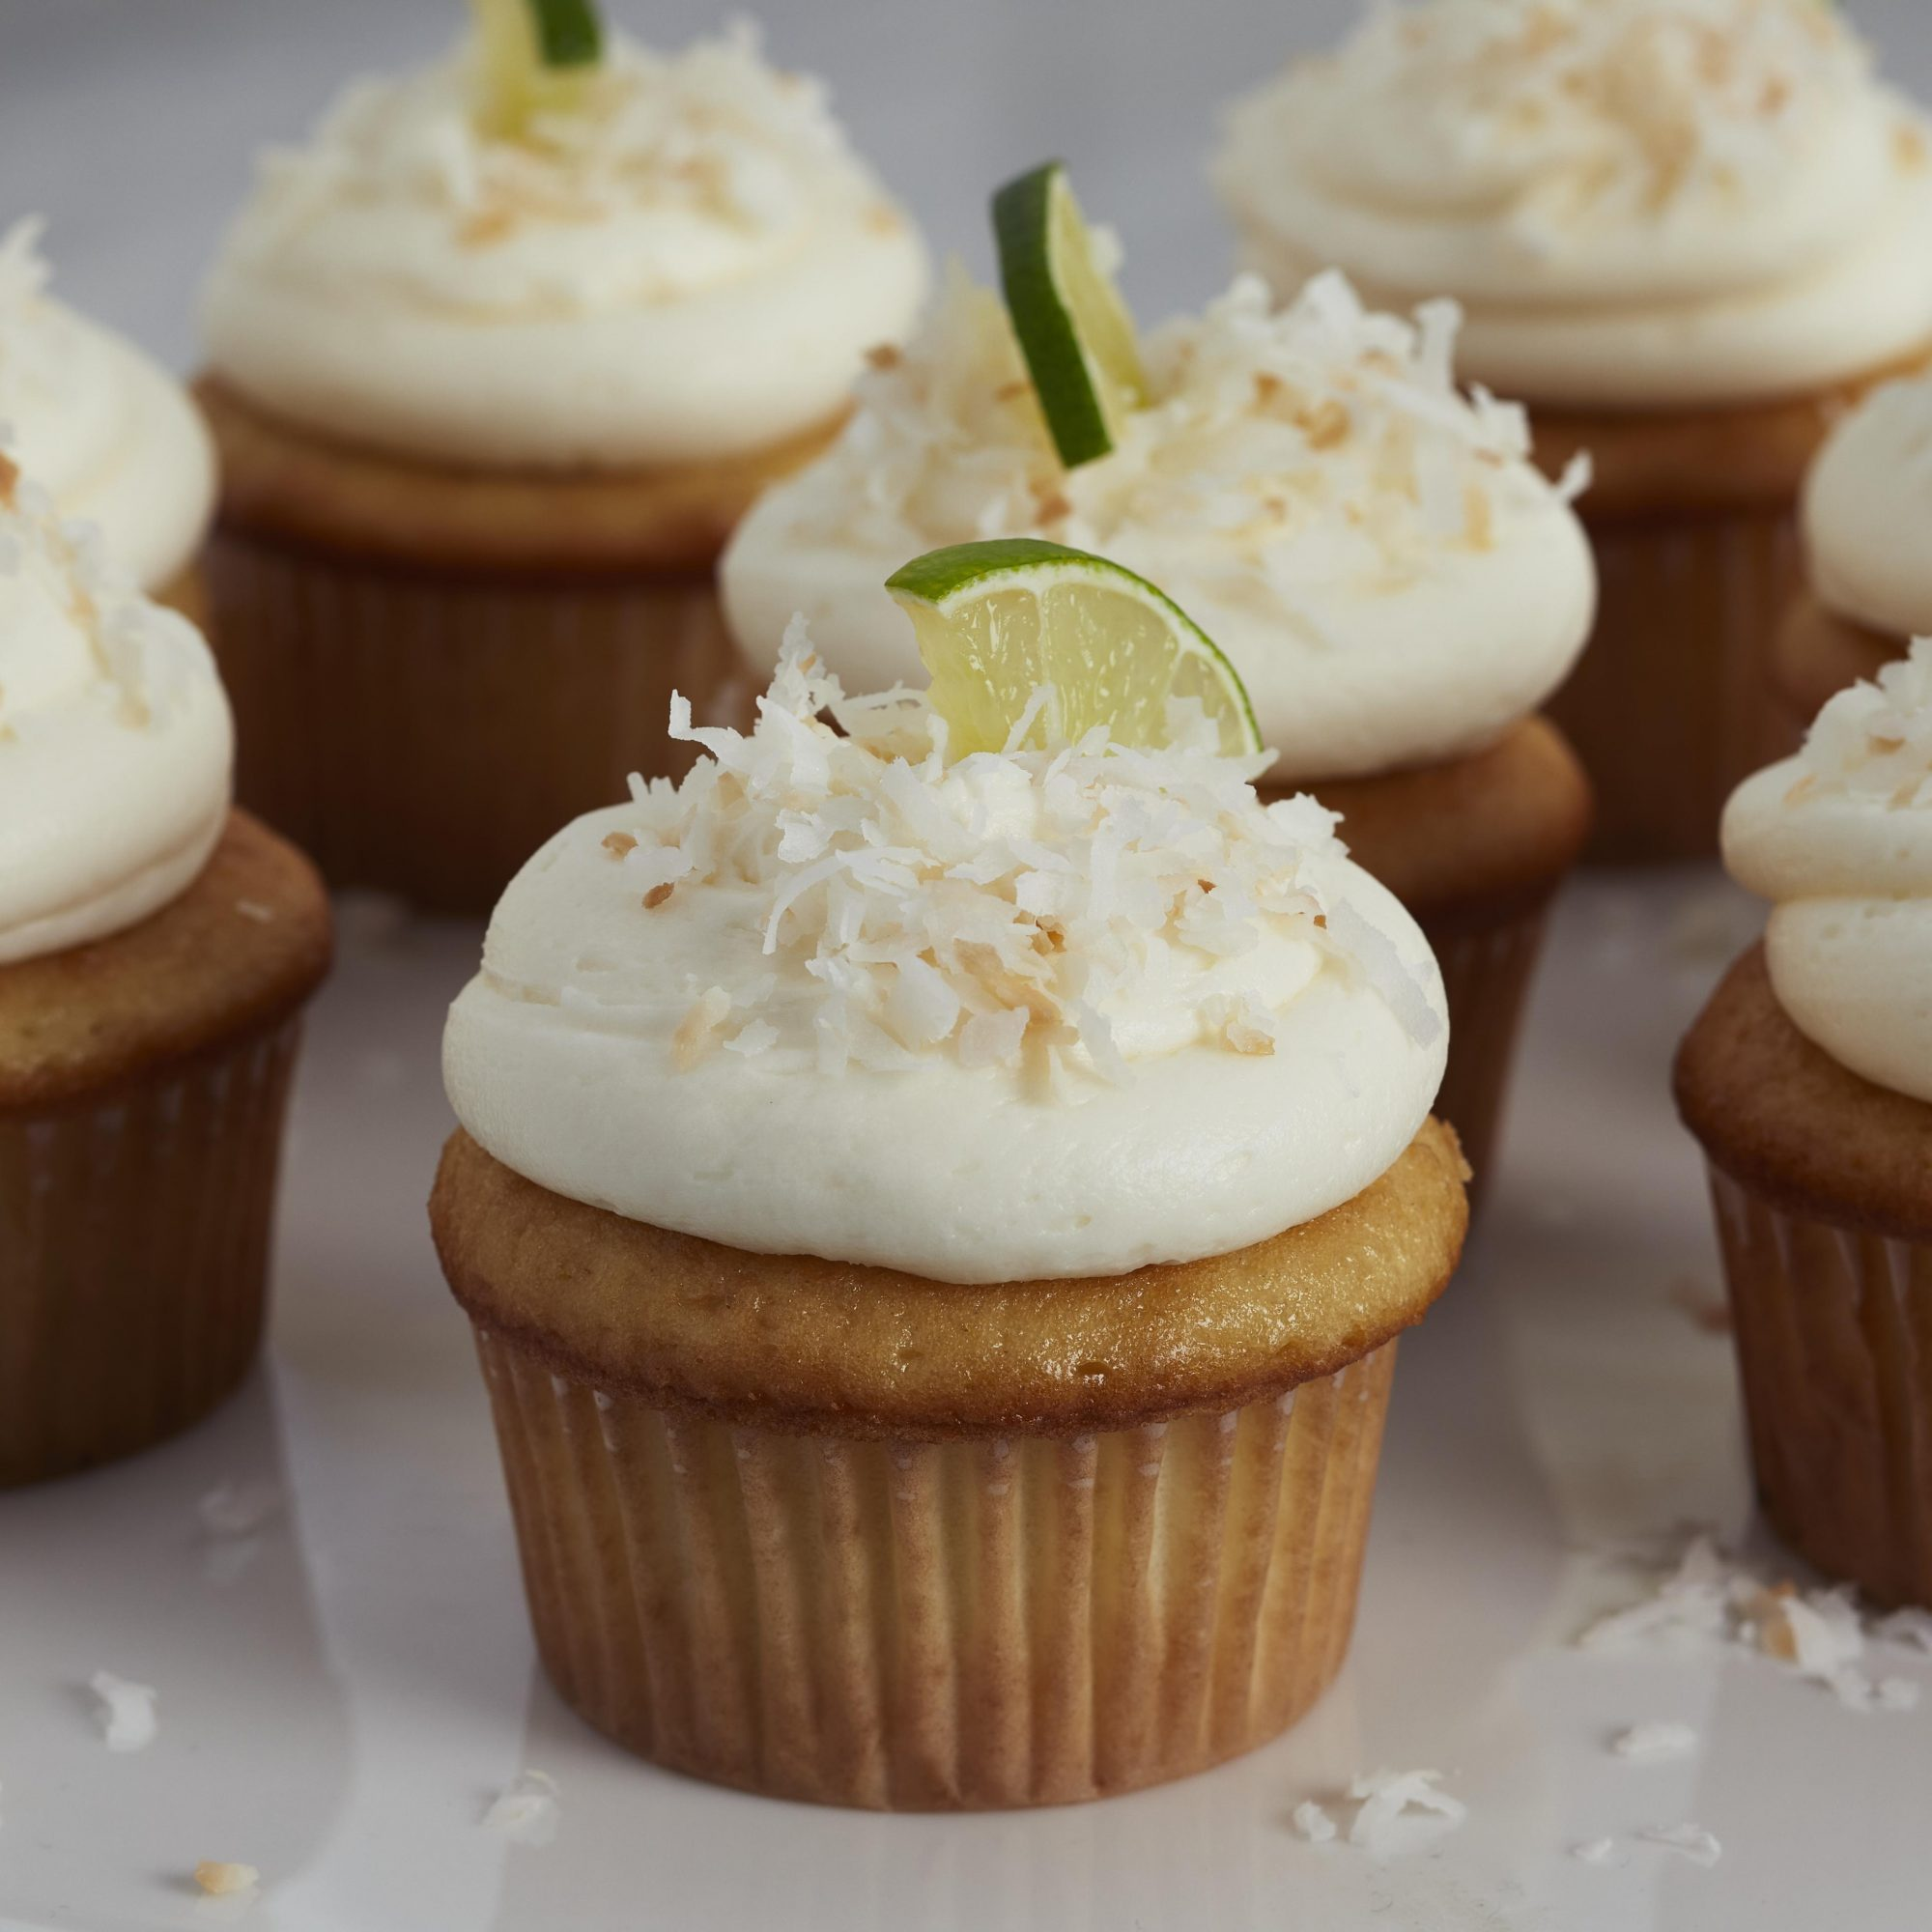 Platter of frosted key lime cupcakes